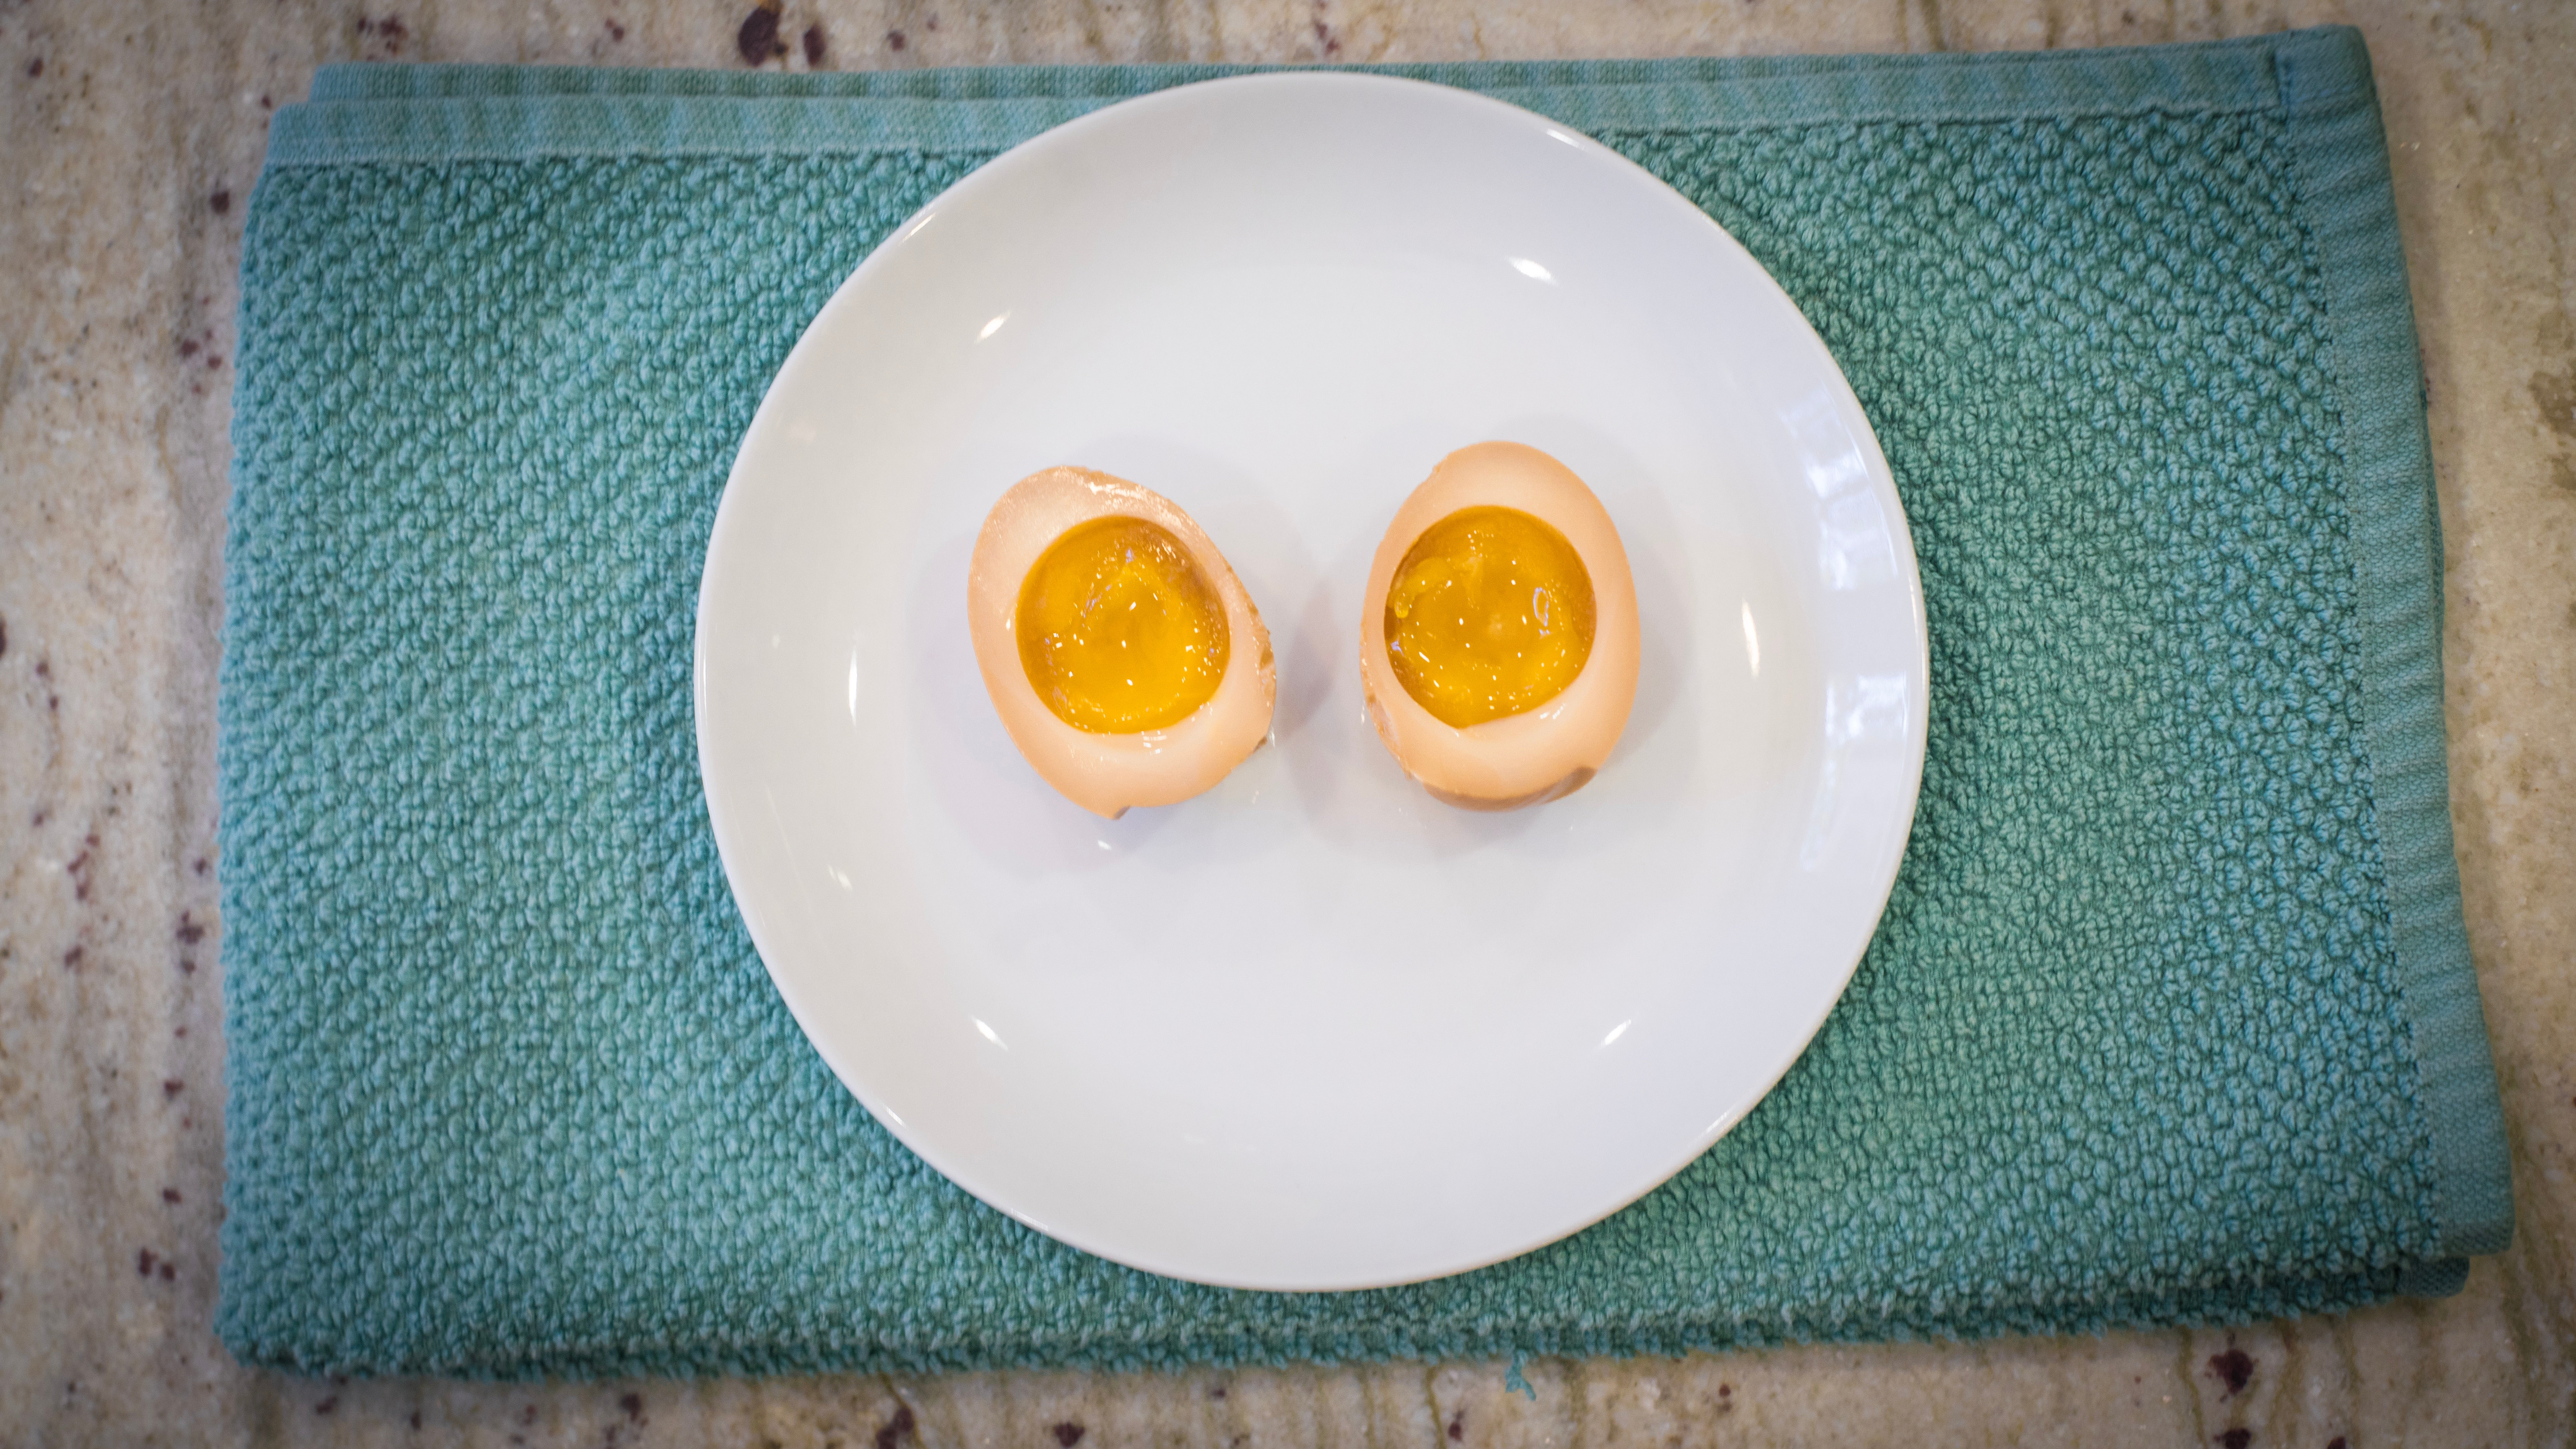 You'll Want To Make These Seasoned Tea Eggs Over And Over